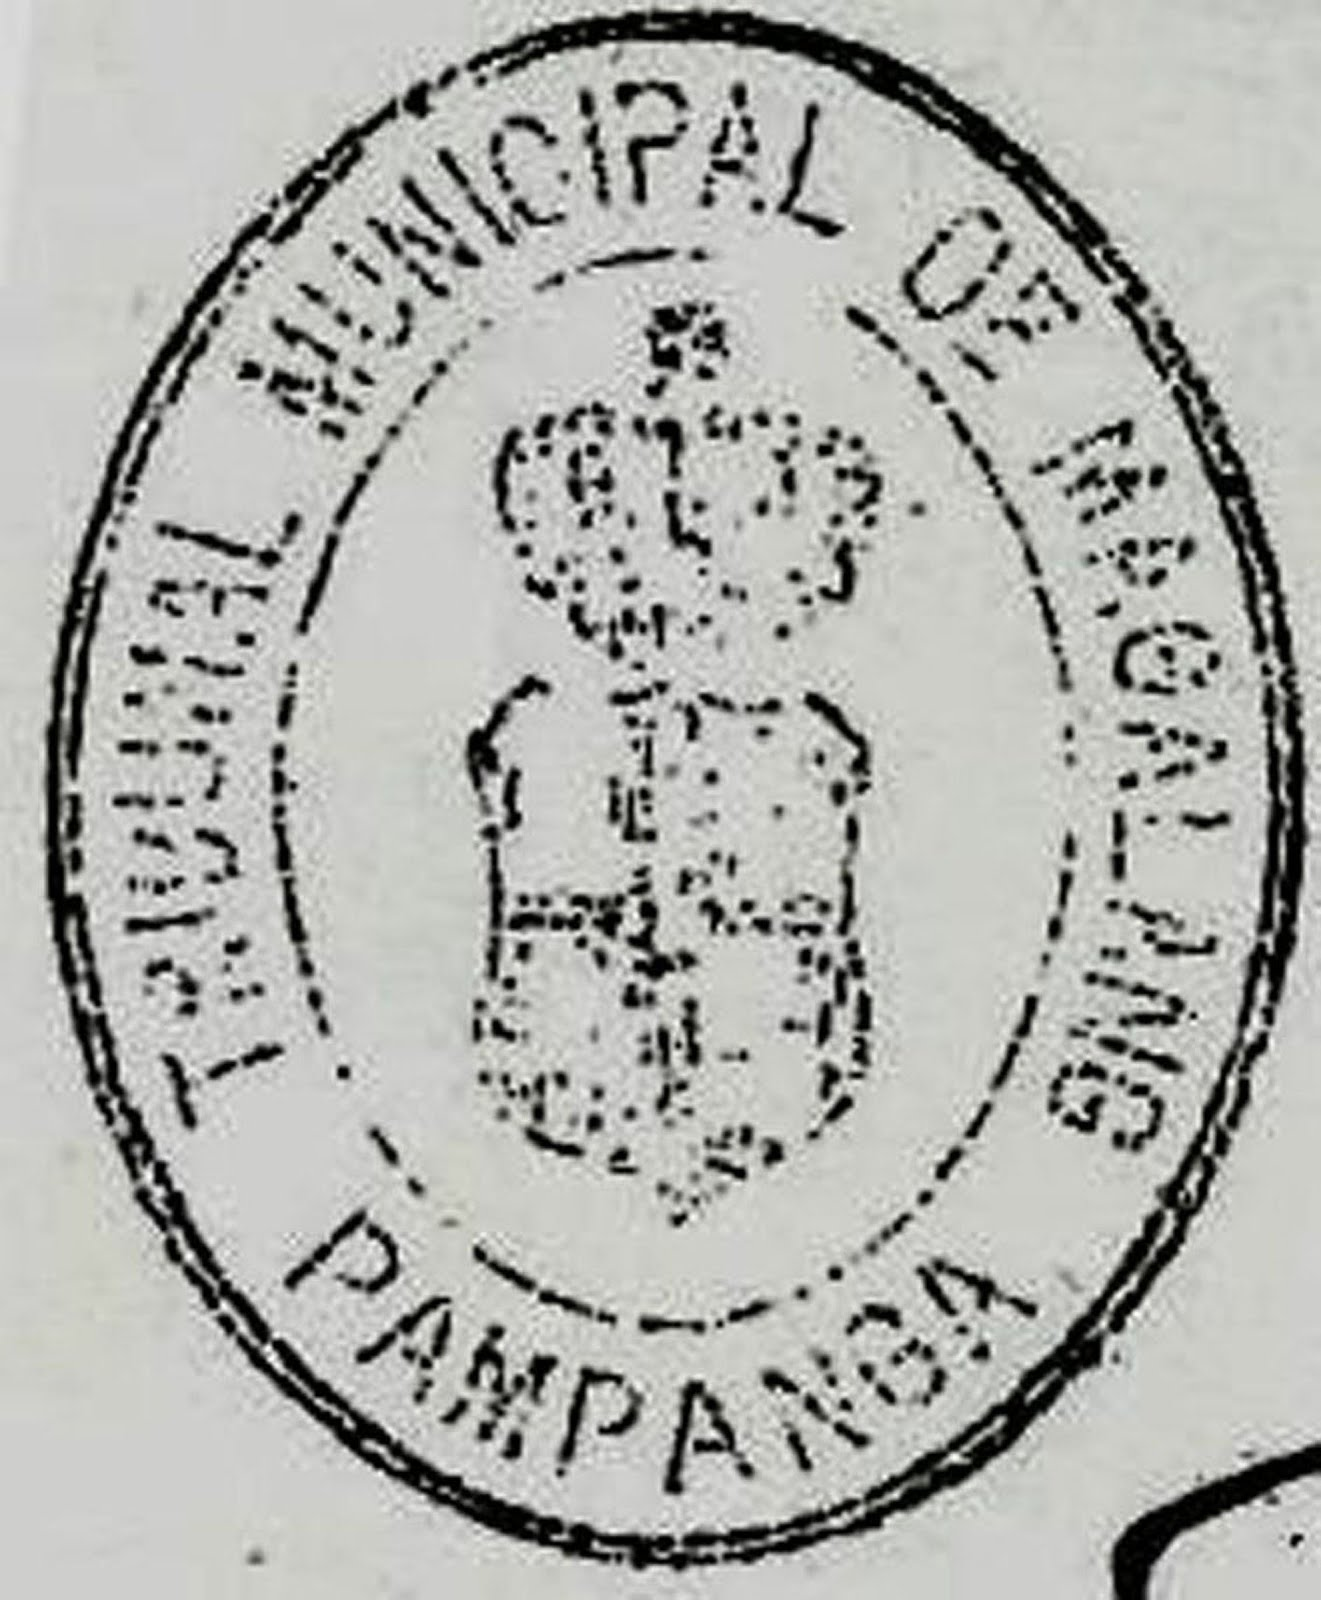 The Old Seal of Magalang c. 1894